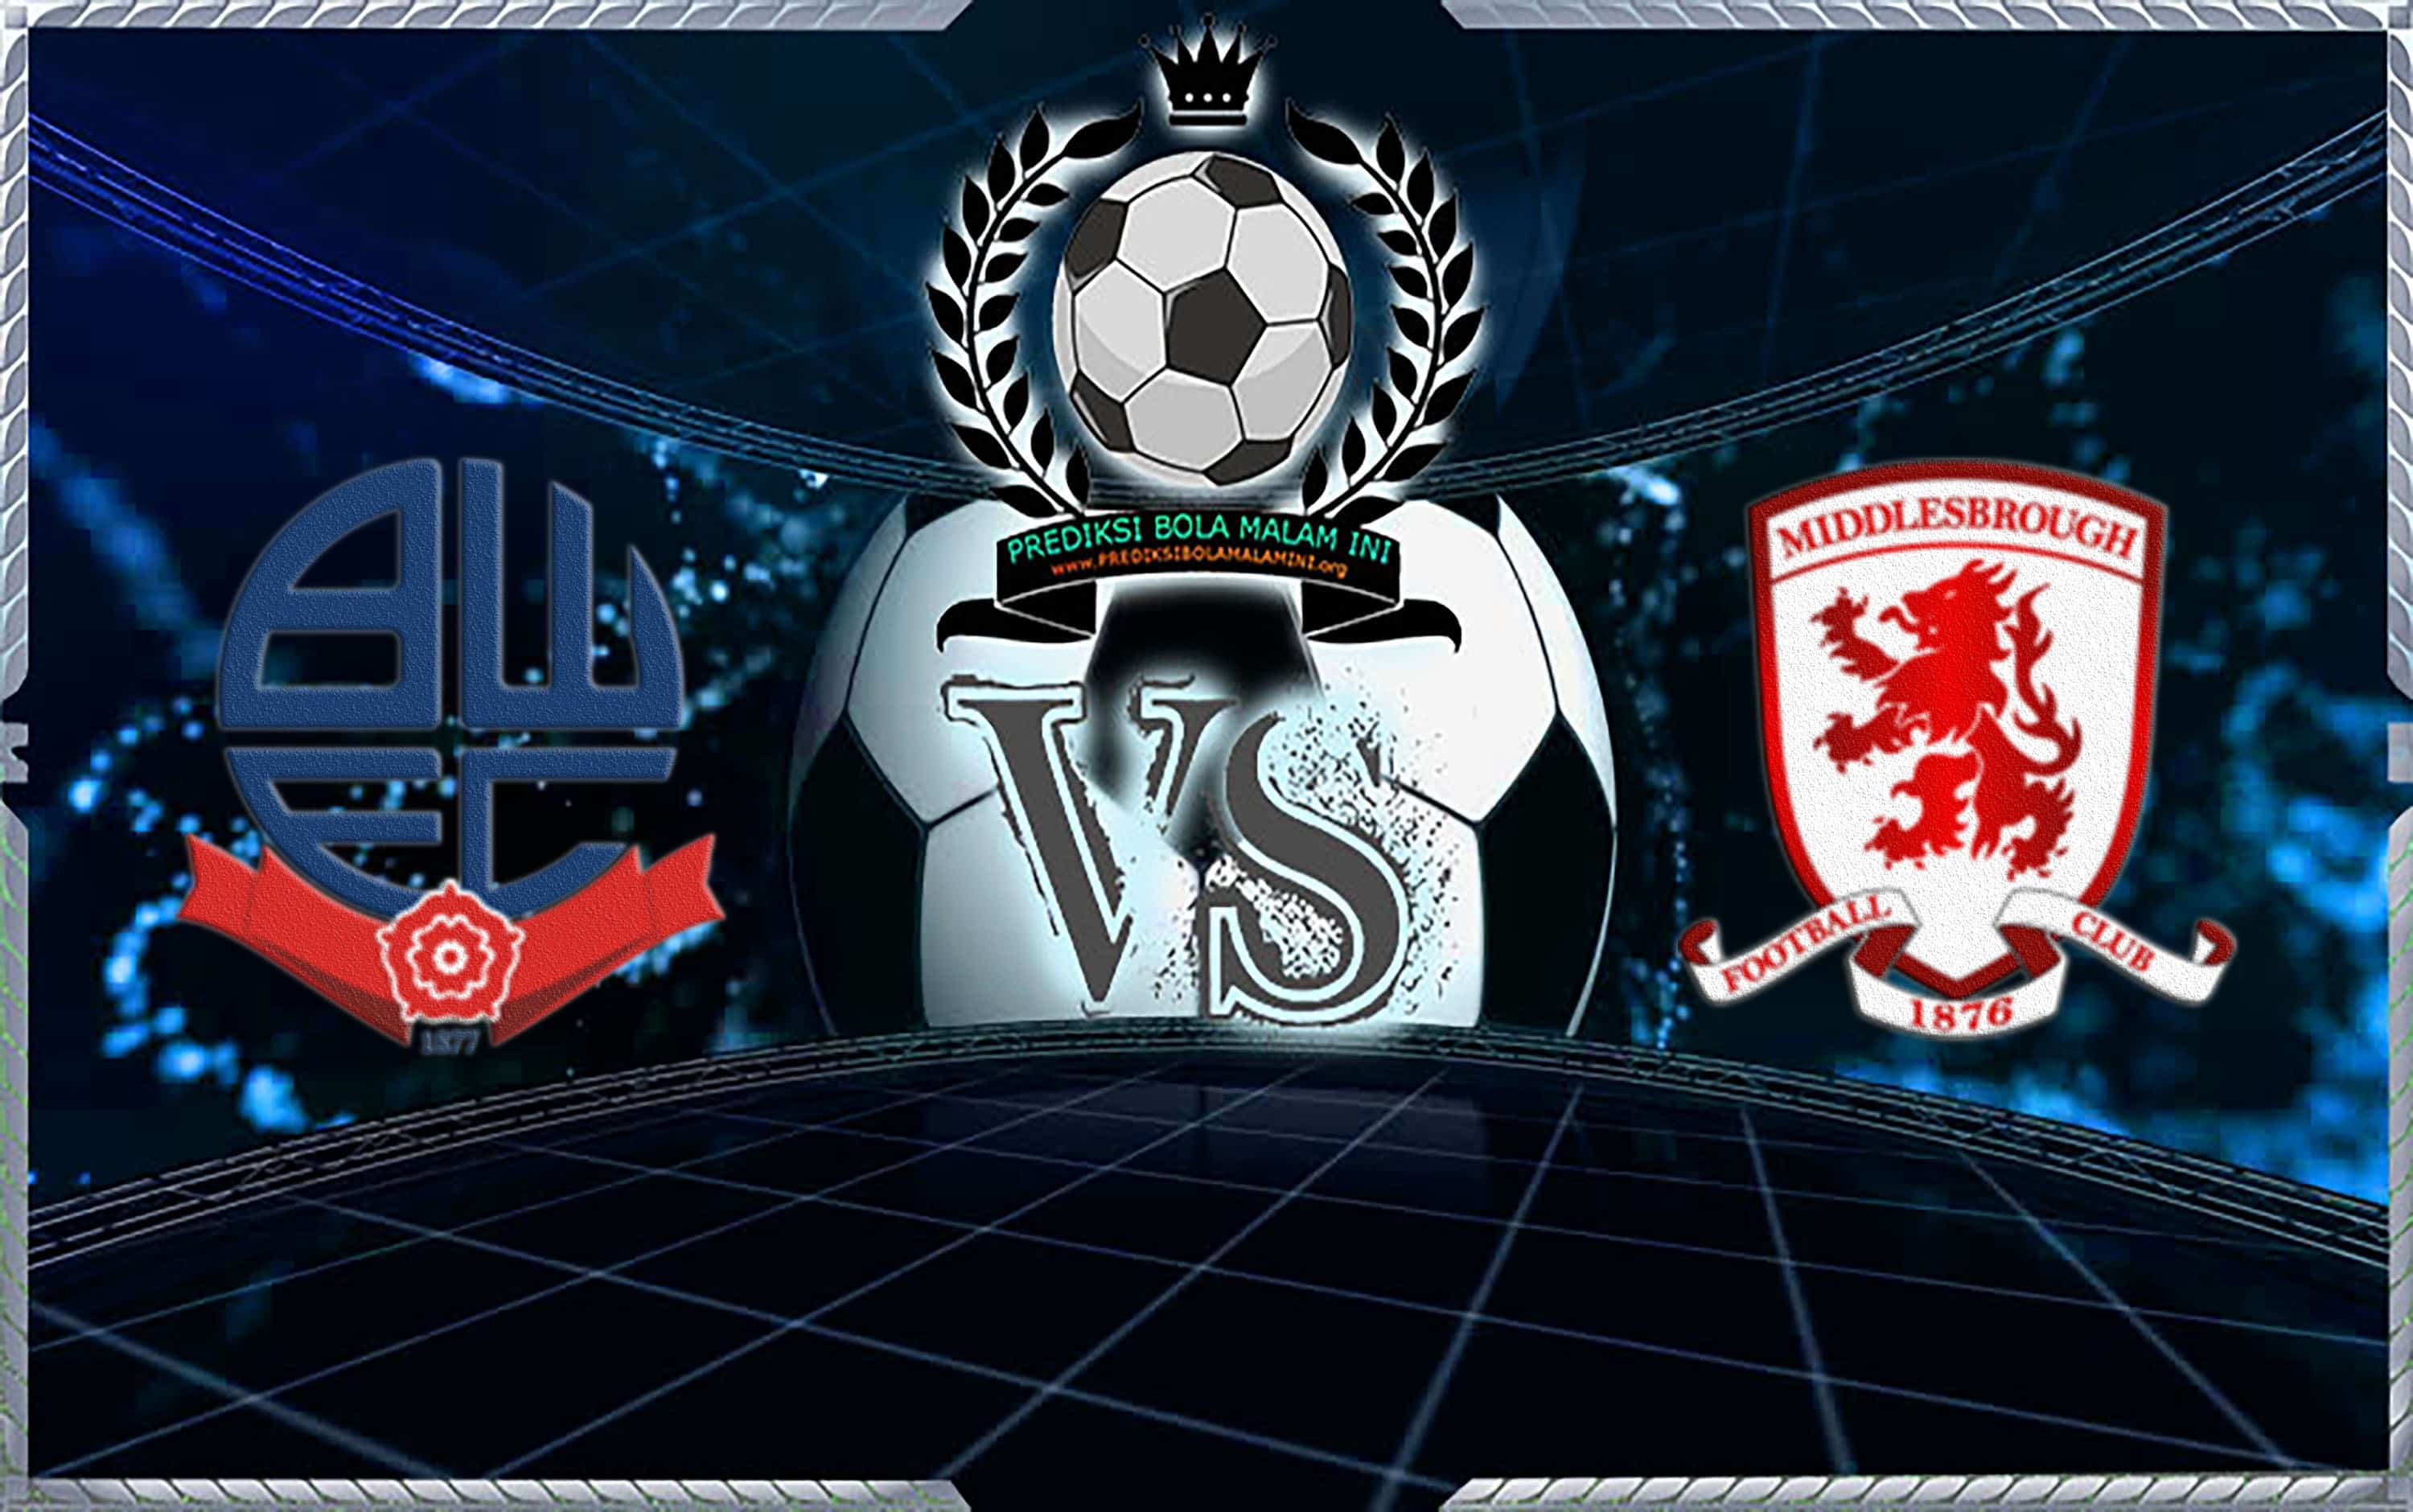 Predikin Skor Bolton Wanderers Vs Middlesbrough 10 April 2019